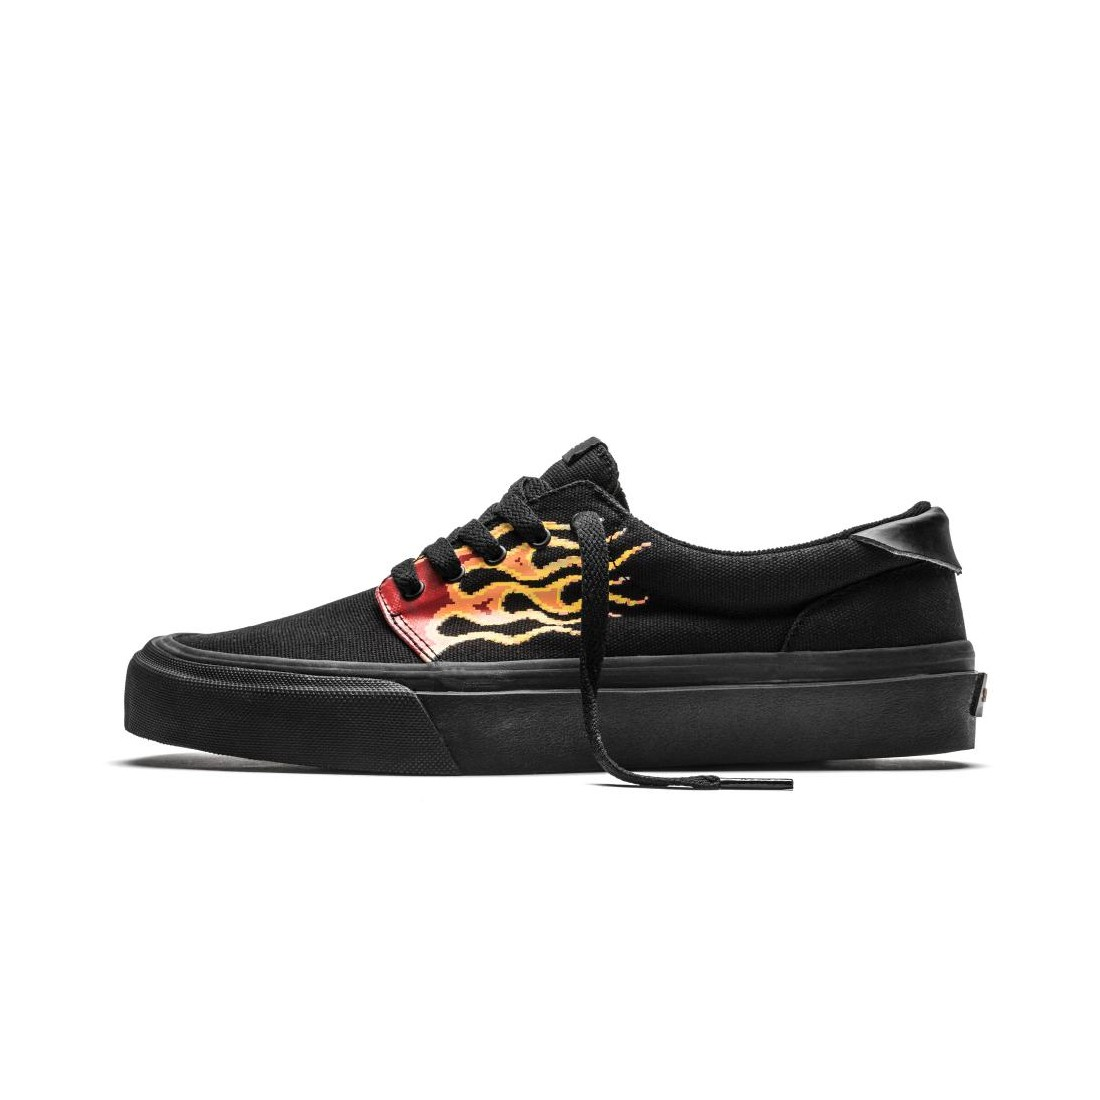 FAIRFAX pixel flame black